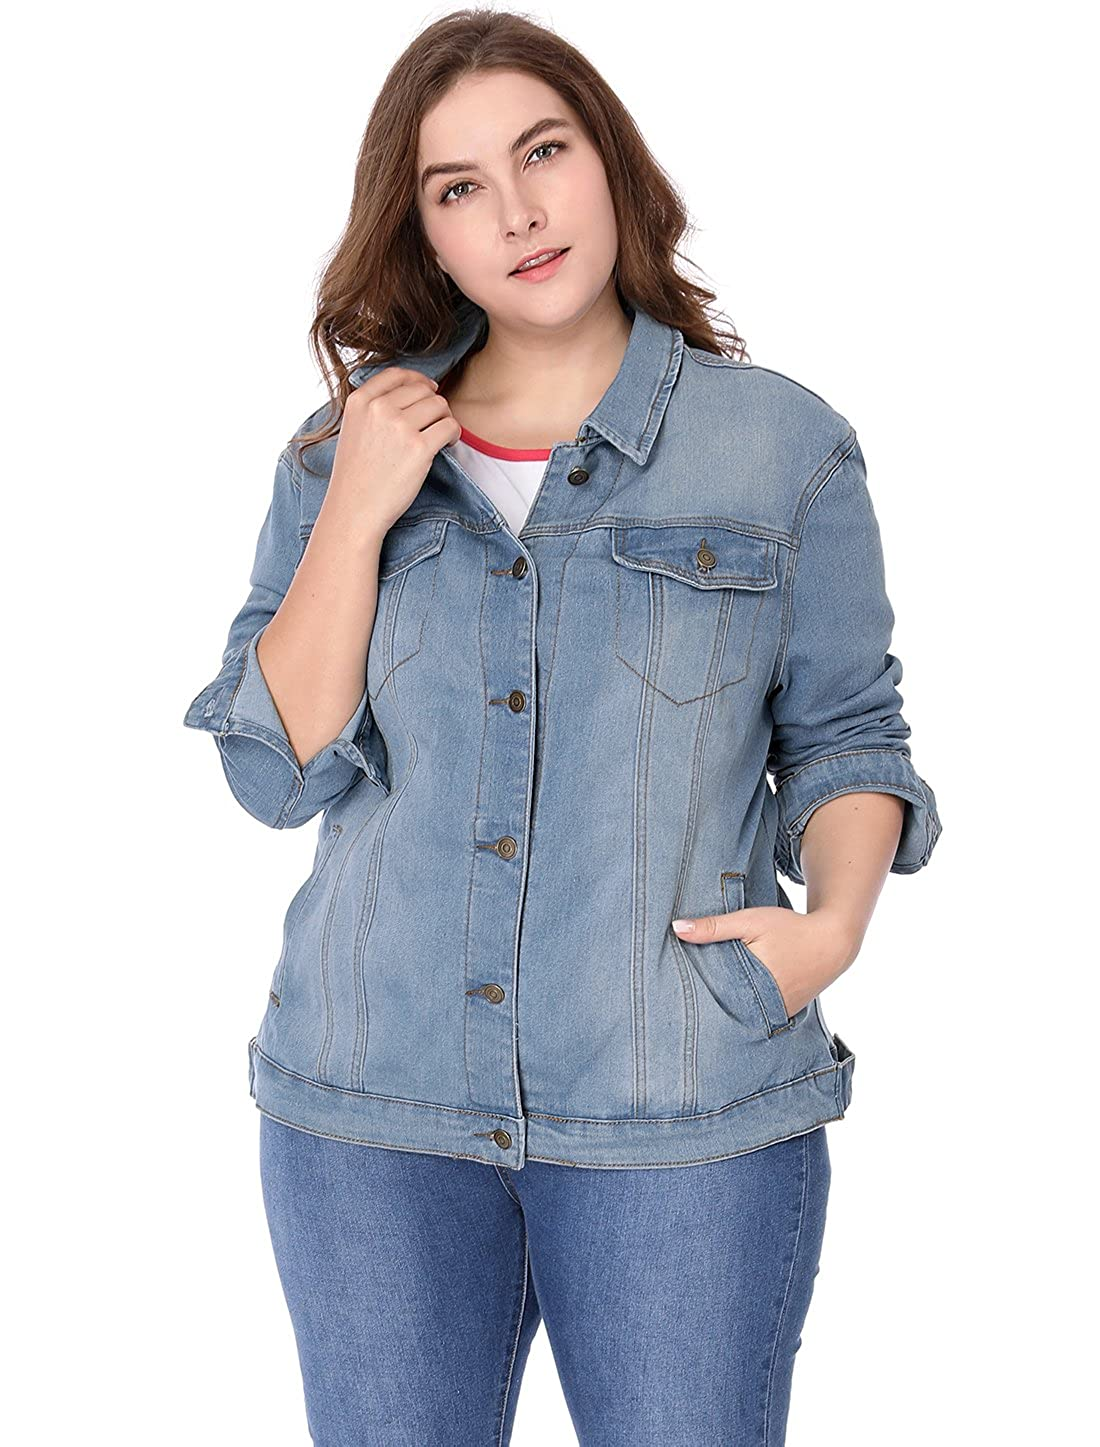 uxcell Womens Plus Size Button Down Washed Denim Jacket Chest Flap Pocket g16060200ux0003